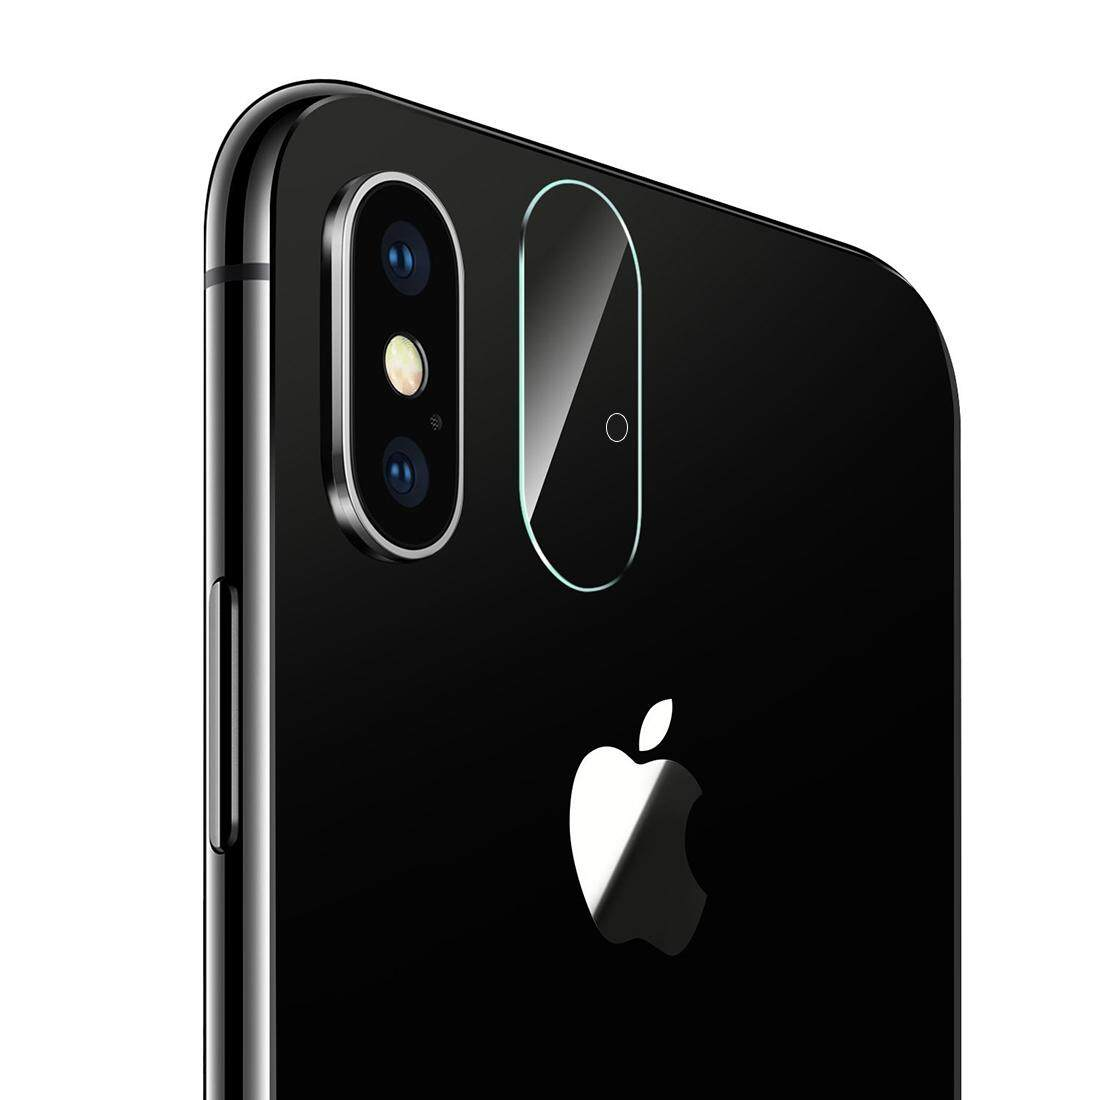 For iPhone X Rear Camera Lens Protector Tempered Glass Protective Film with Holes - intl